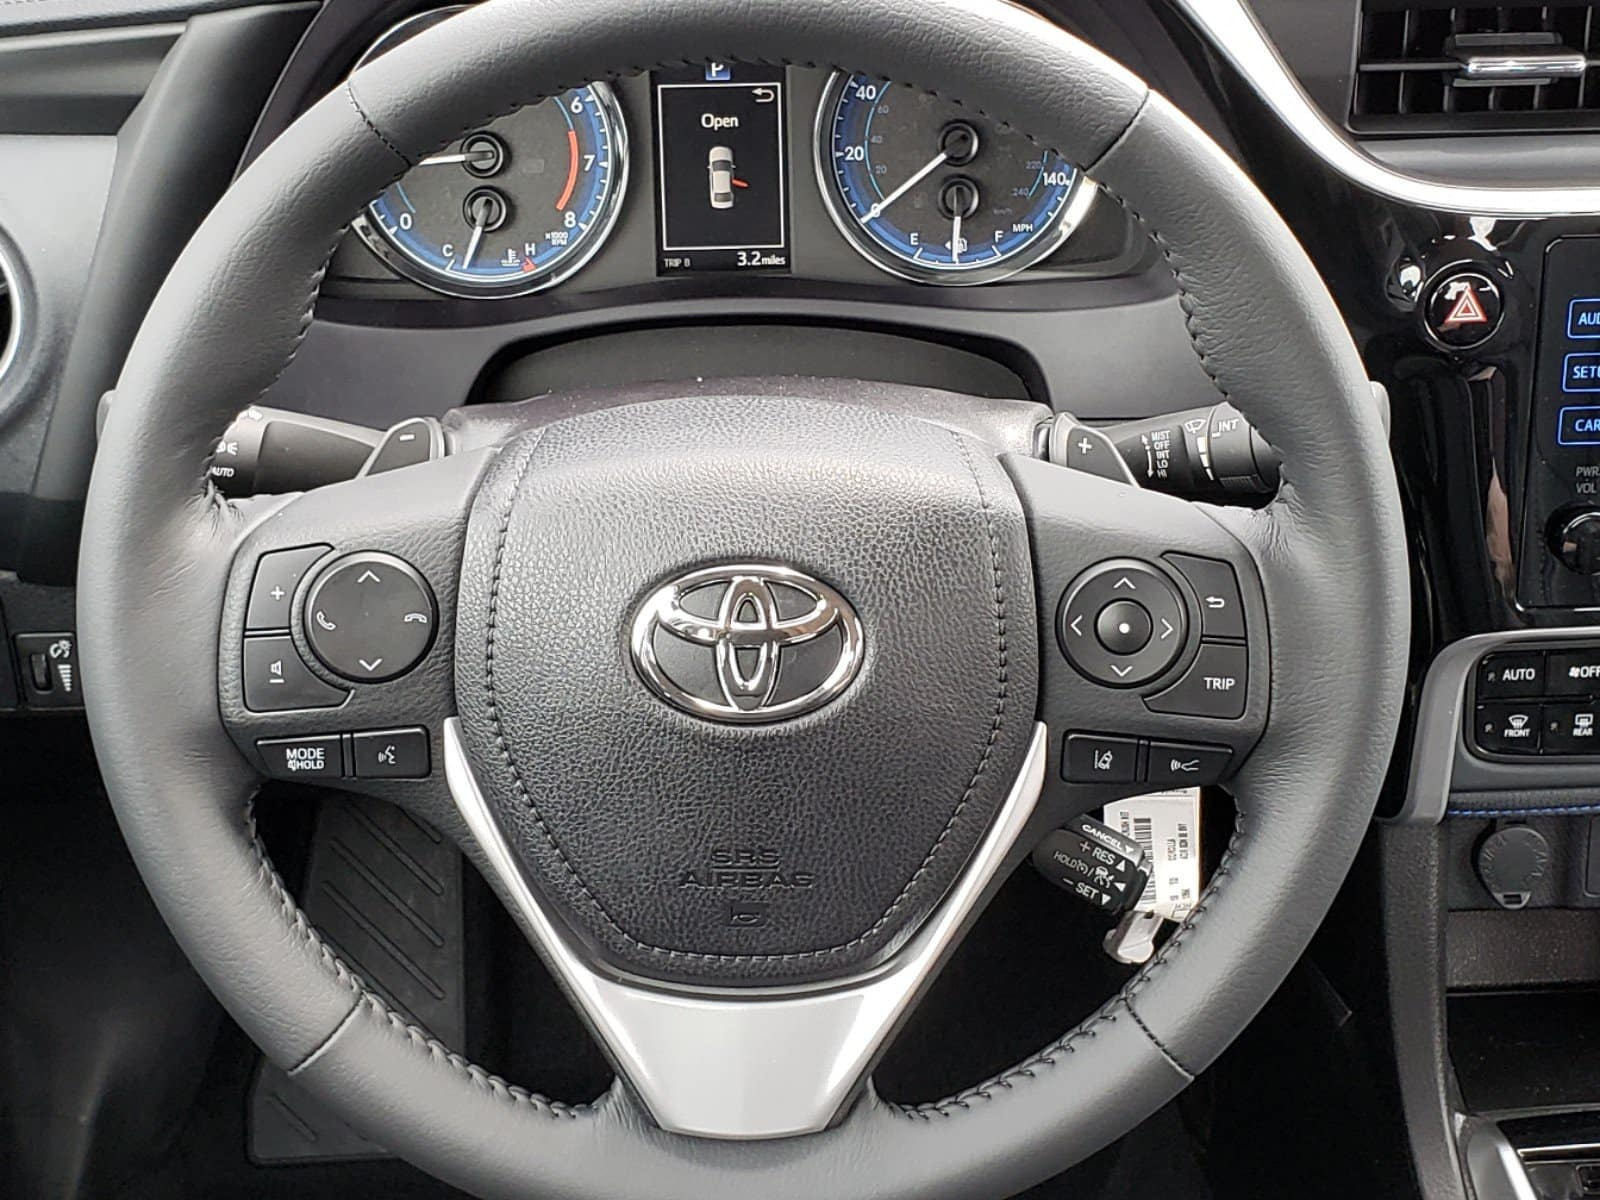 Test drive the new Orlando Toyota Corolla.